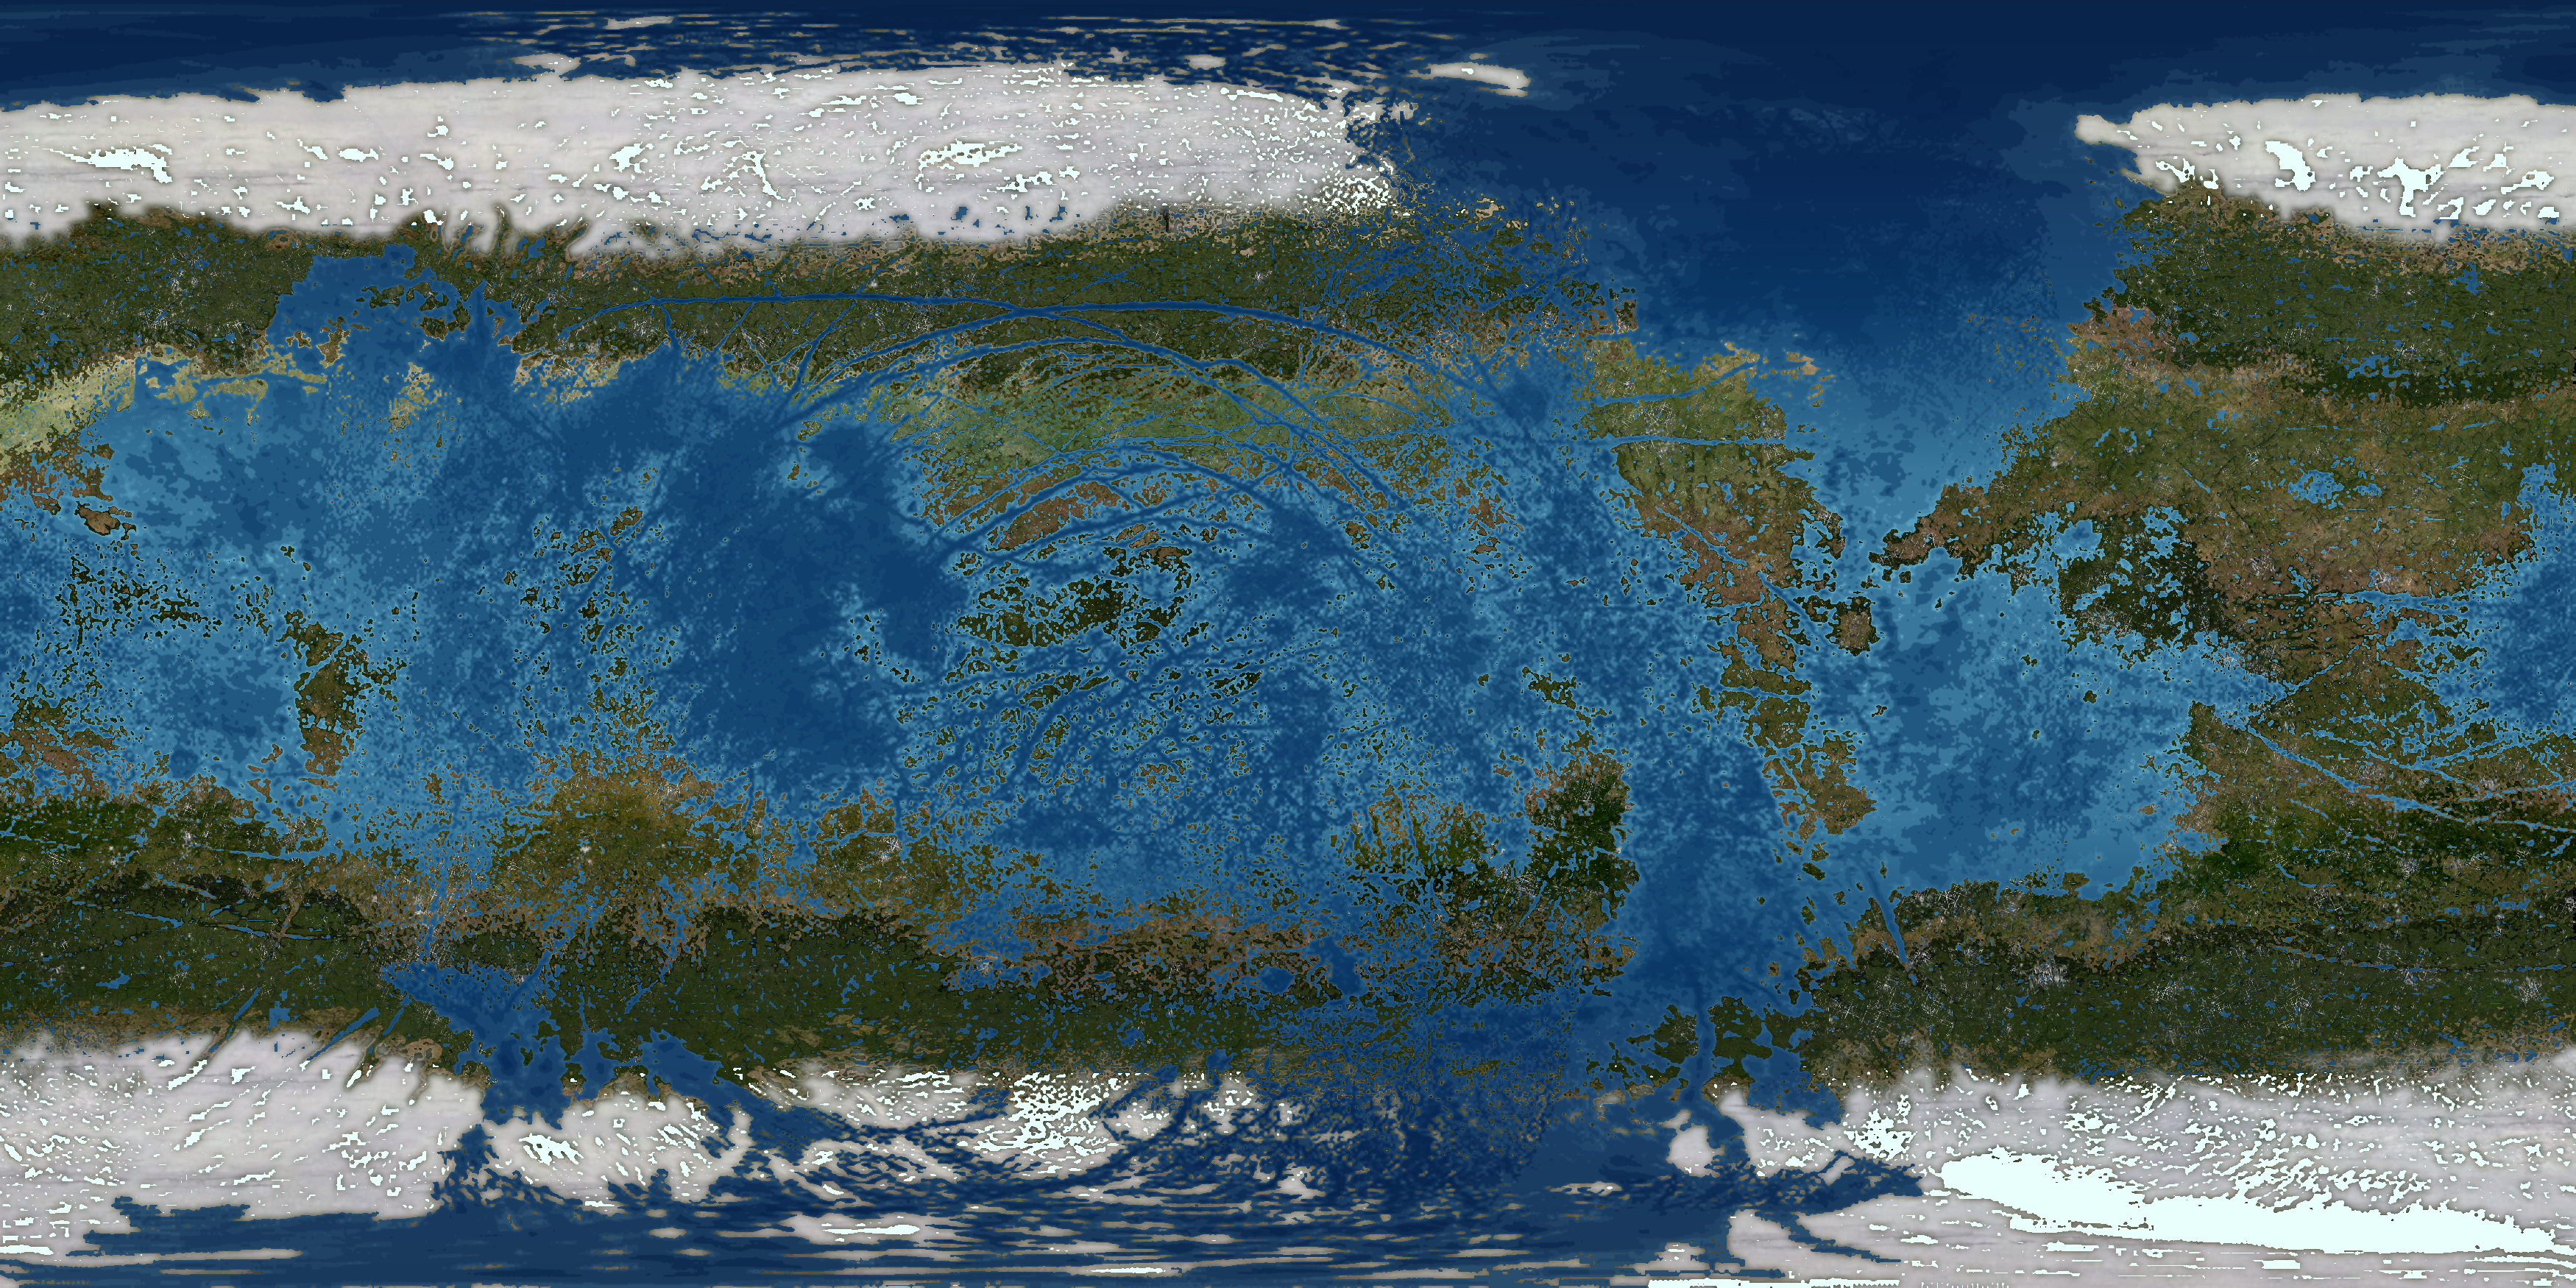 Europa Terraformed by 1Wyrmshadow1 on DeviantArt on atmosphere on pluto, illustrations of pluto, journey to pluto, voyager pluto, mission to pluto, who discovered pluto, color of pluto, viva la pluto, god of pluto, google pluto, sun pluto, dwarf planet poor pluto, size of pluto, hydra moon of pluto, temperature on pluto, space pluto, symbol of pluto, everything about pluto, information about pluto, the word pluto,